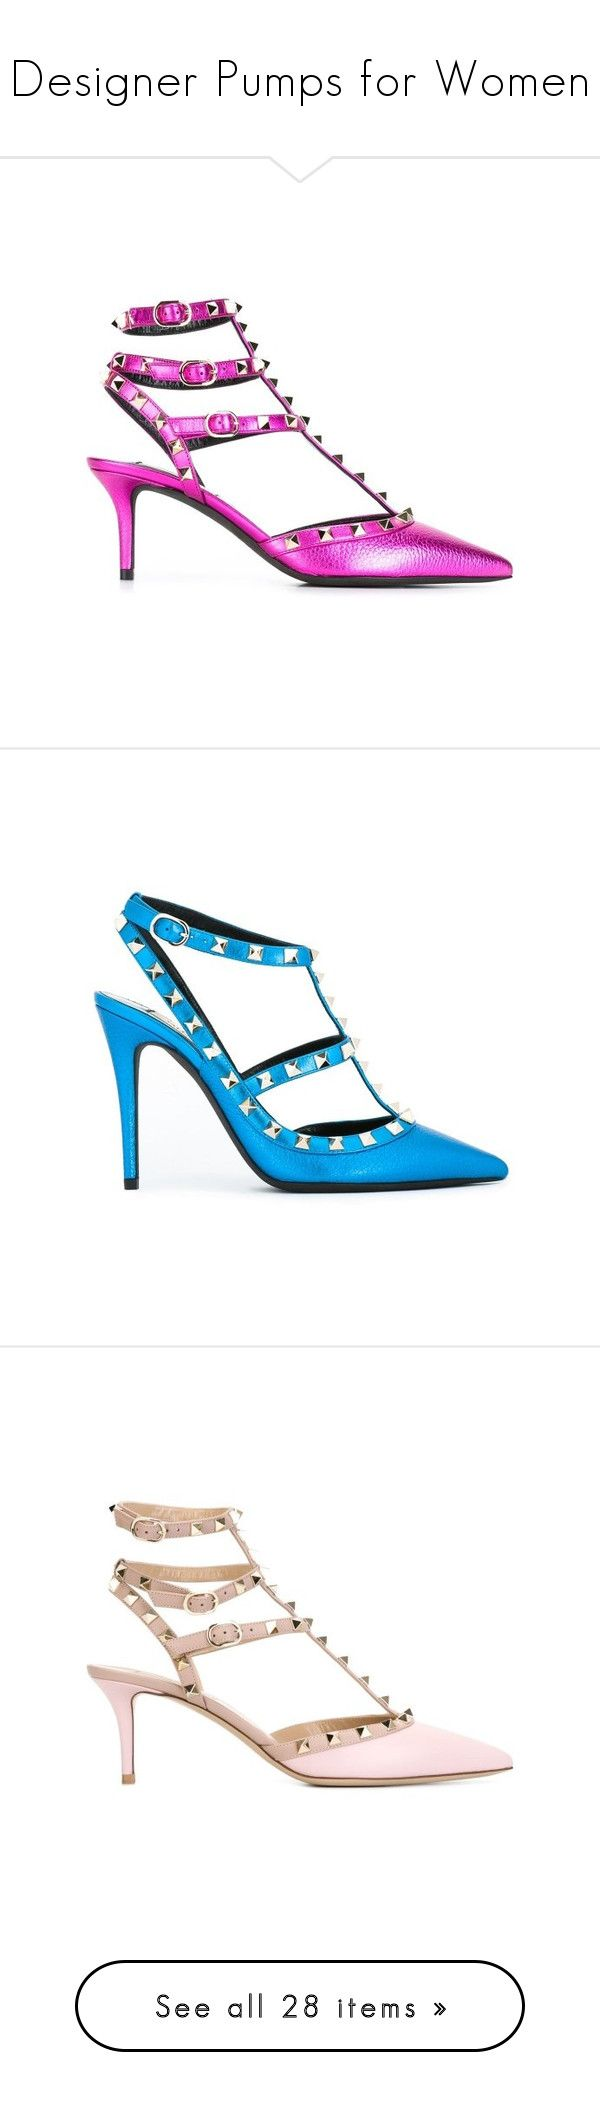 """""""Designer Pumps for Women"""" by modalist ❤ liked on Polyvore featuring shoes, pumps, stiletto pumps, ankle strap stilettos, purple pumps, ankle strap shoes, purple shoes, high heel stilettos, stilettos shoes and blue pointed toe pumps"""